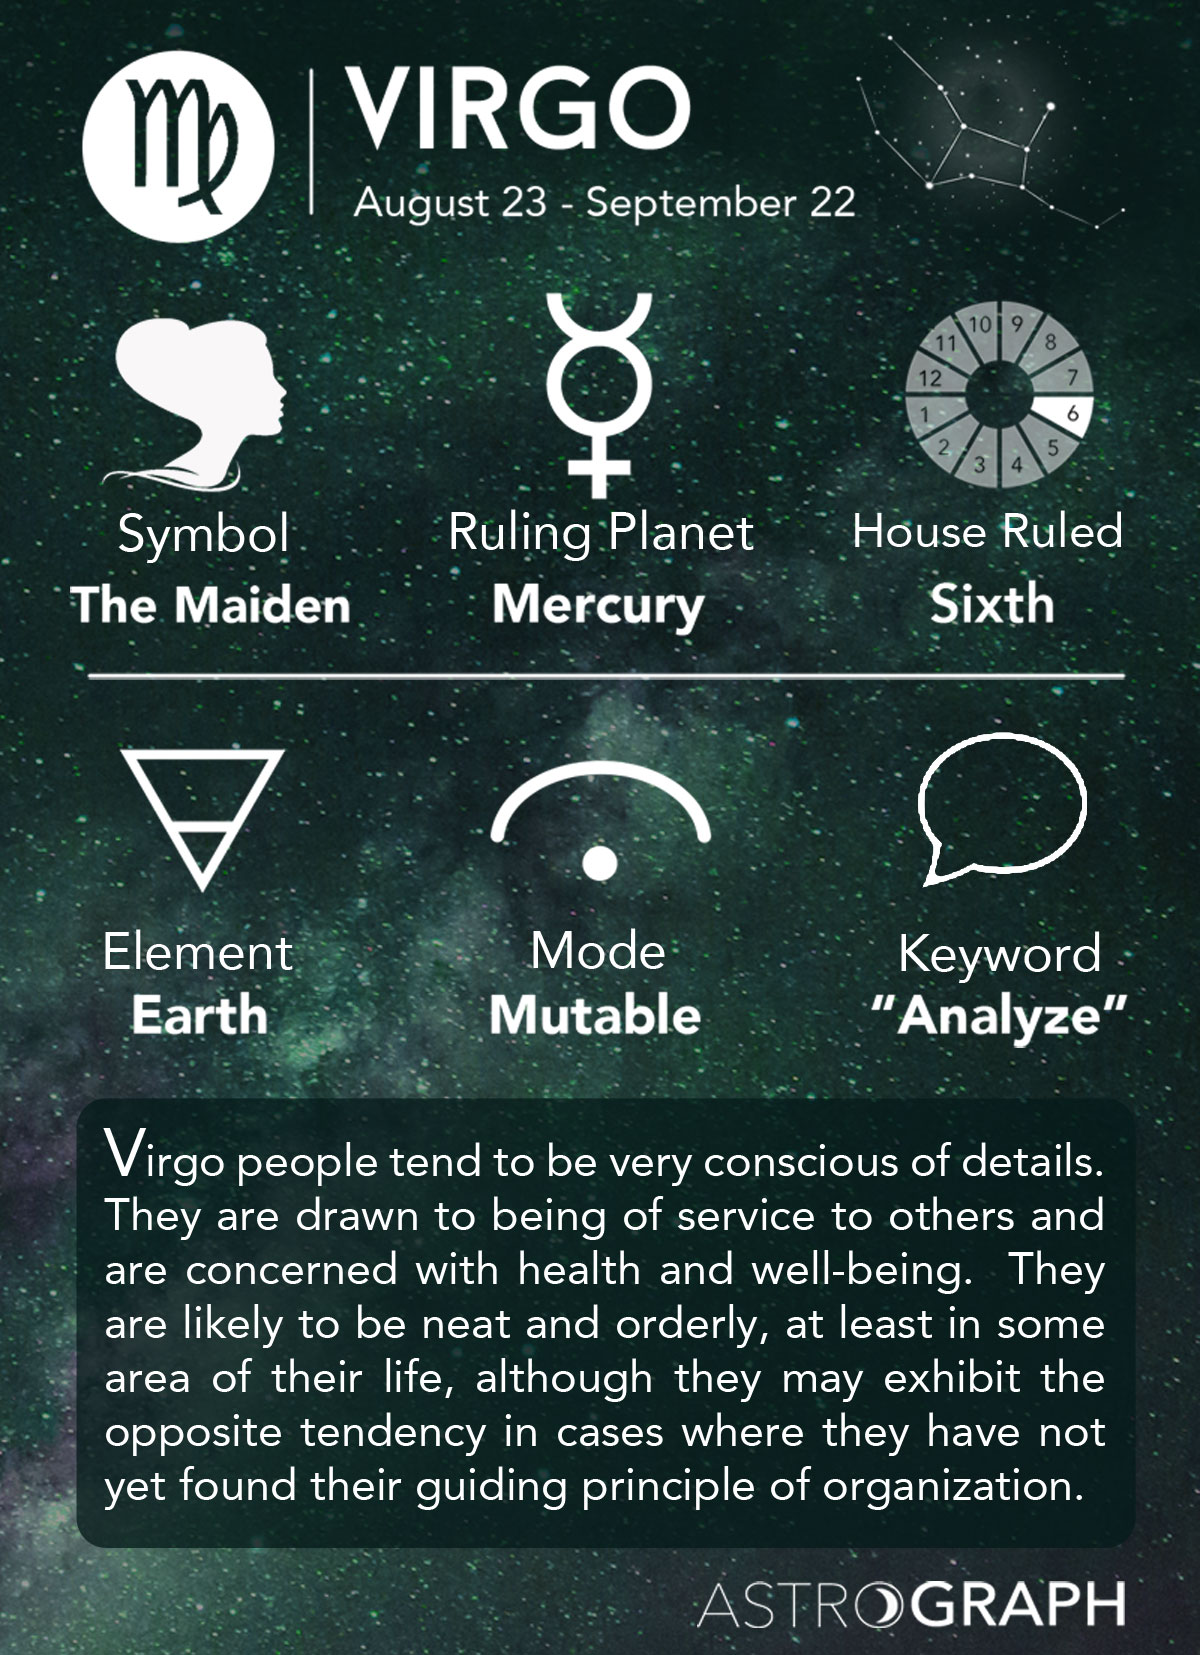 ASTROGRAPH - Virgo in Astrology